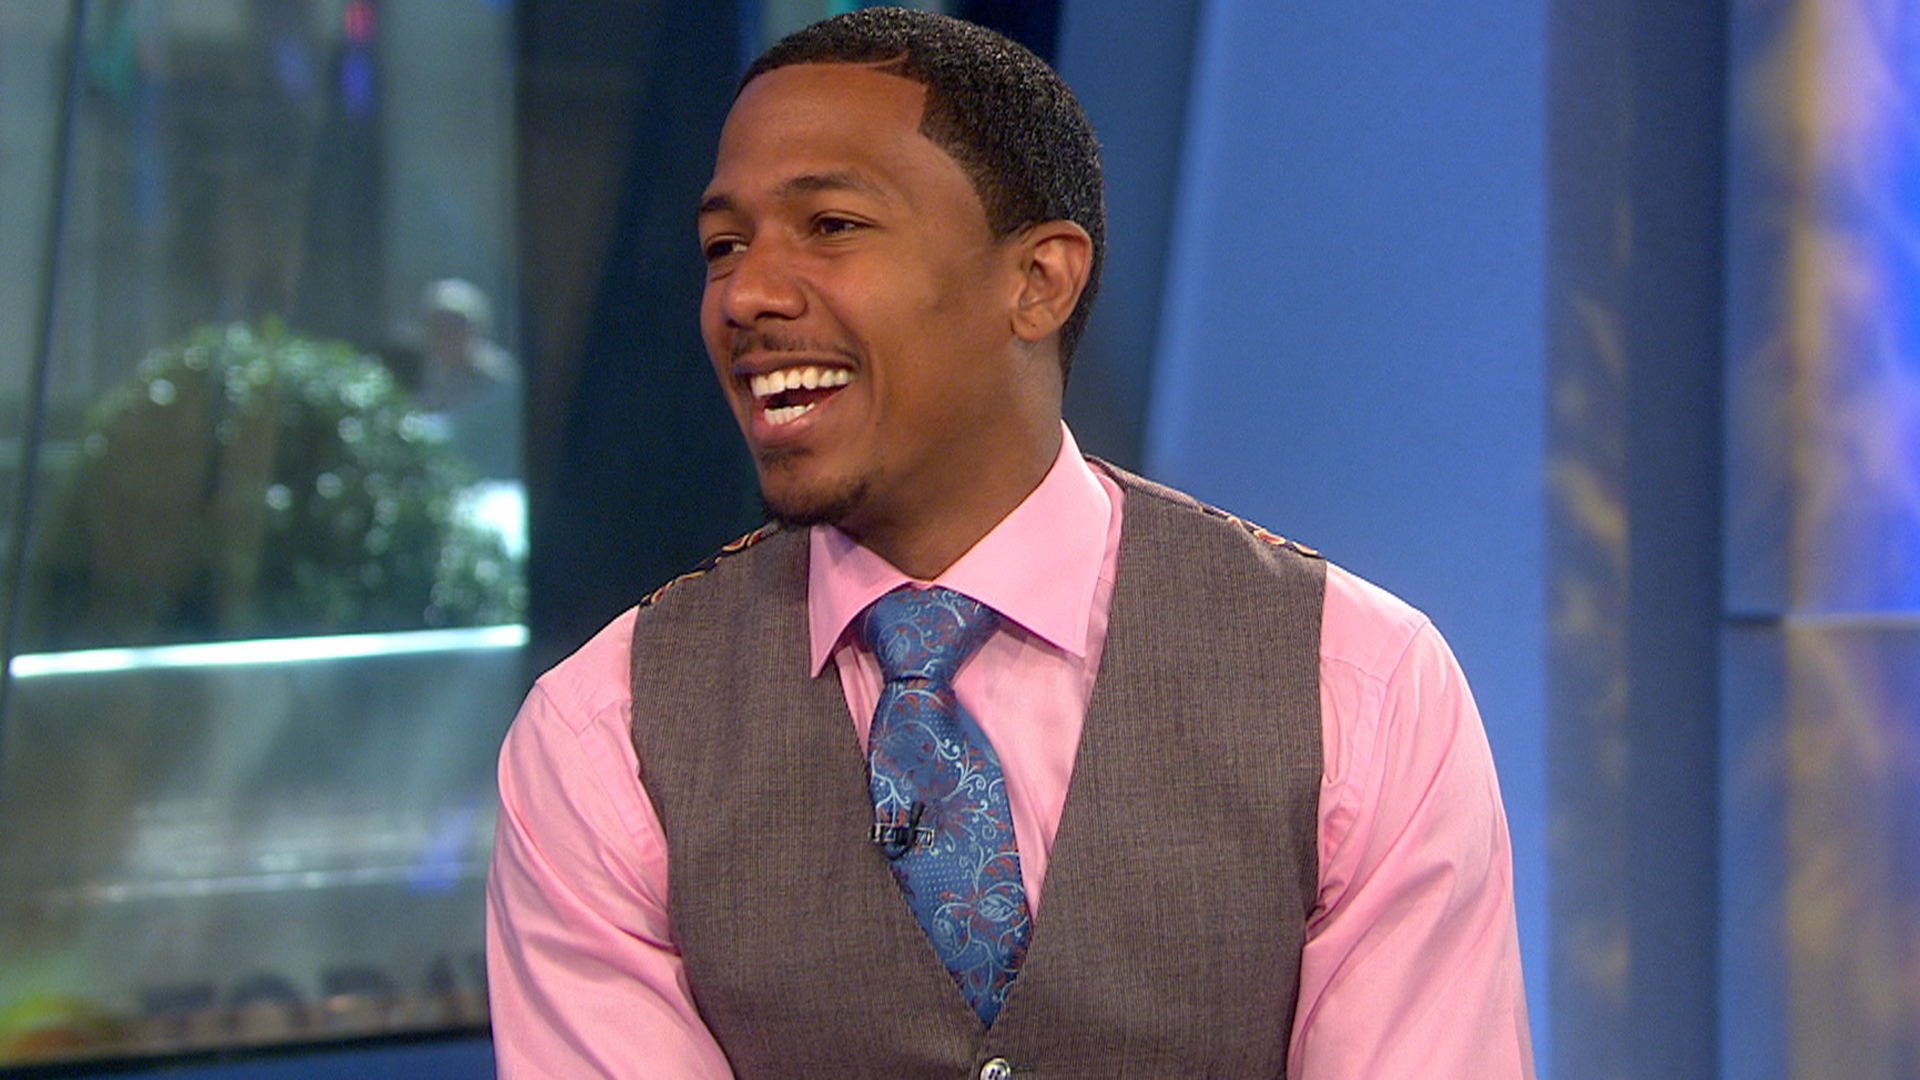 Nick Cannon reveals details of Mariah Carey's 'pretty serious' injuries - TODAY.com